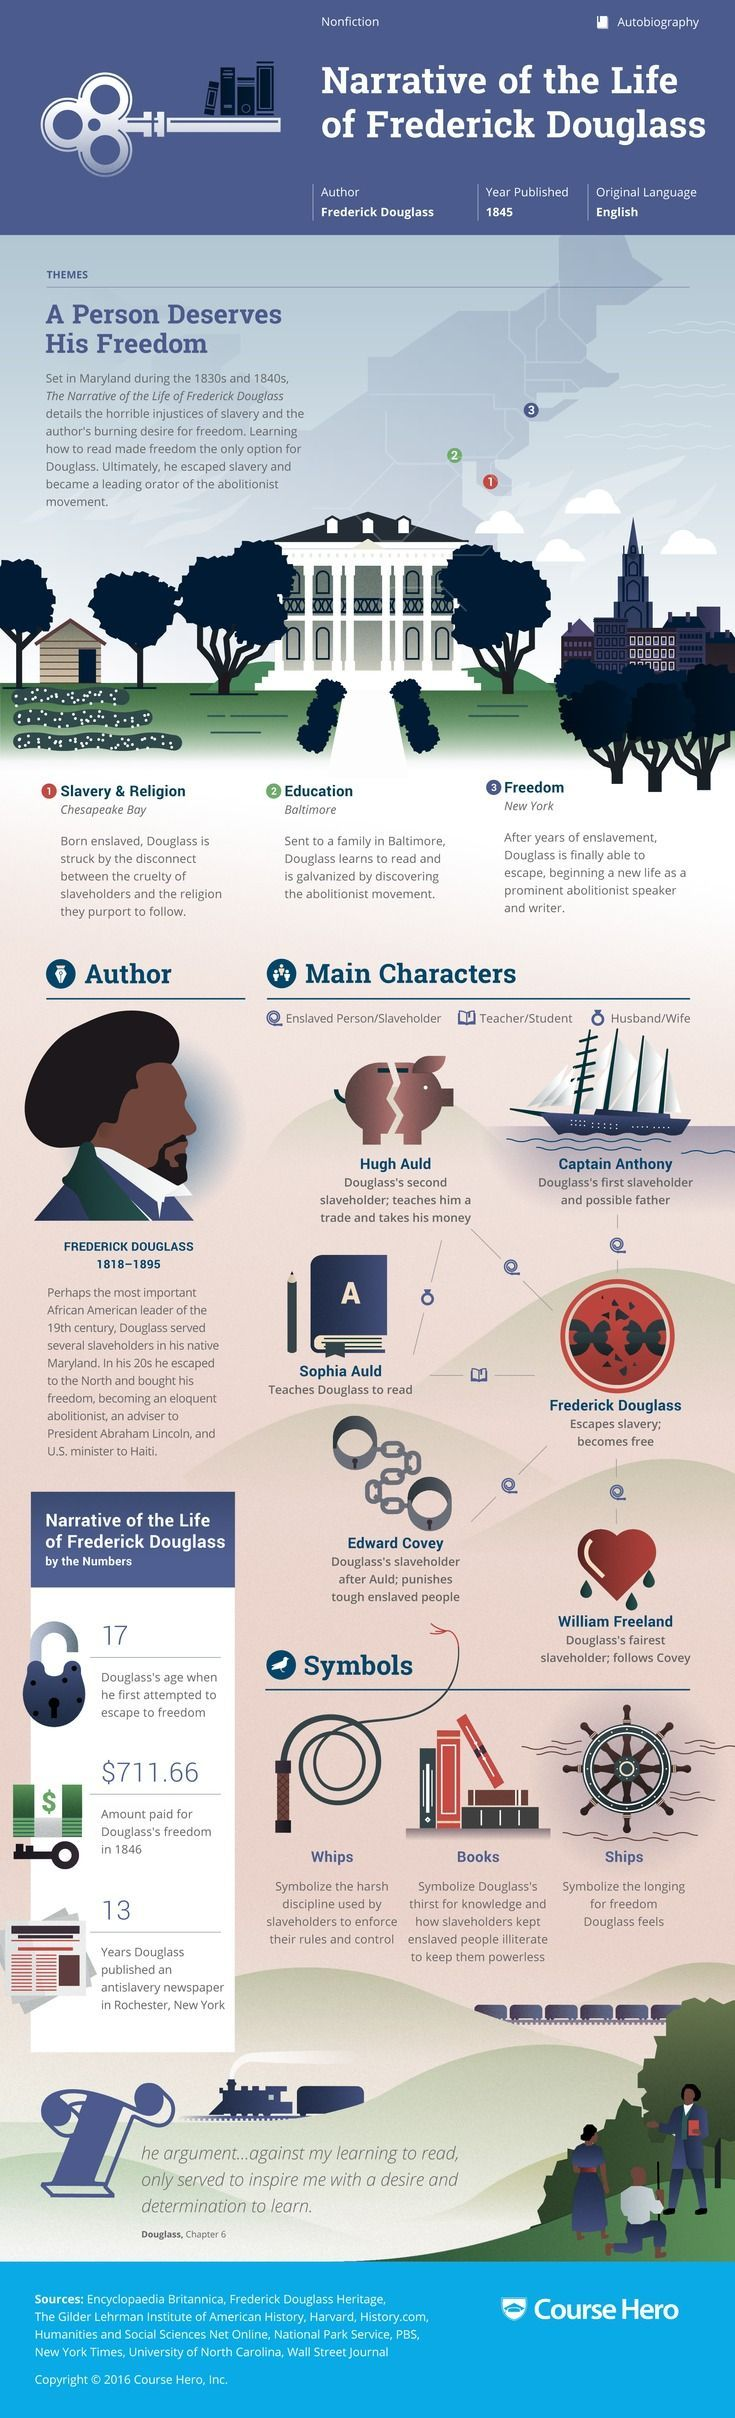 'narrative Of The Life Of Frederick Douglass'graphic